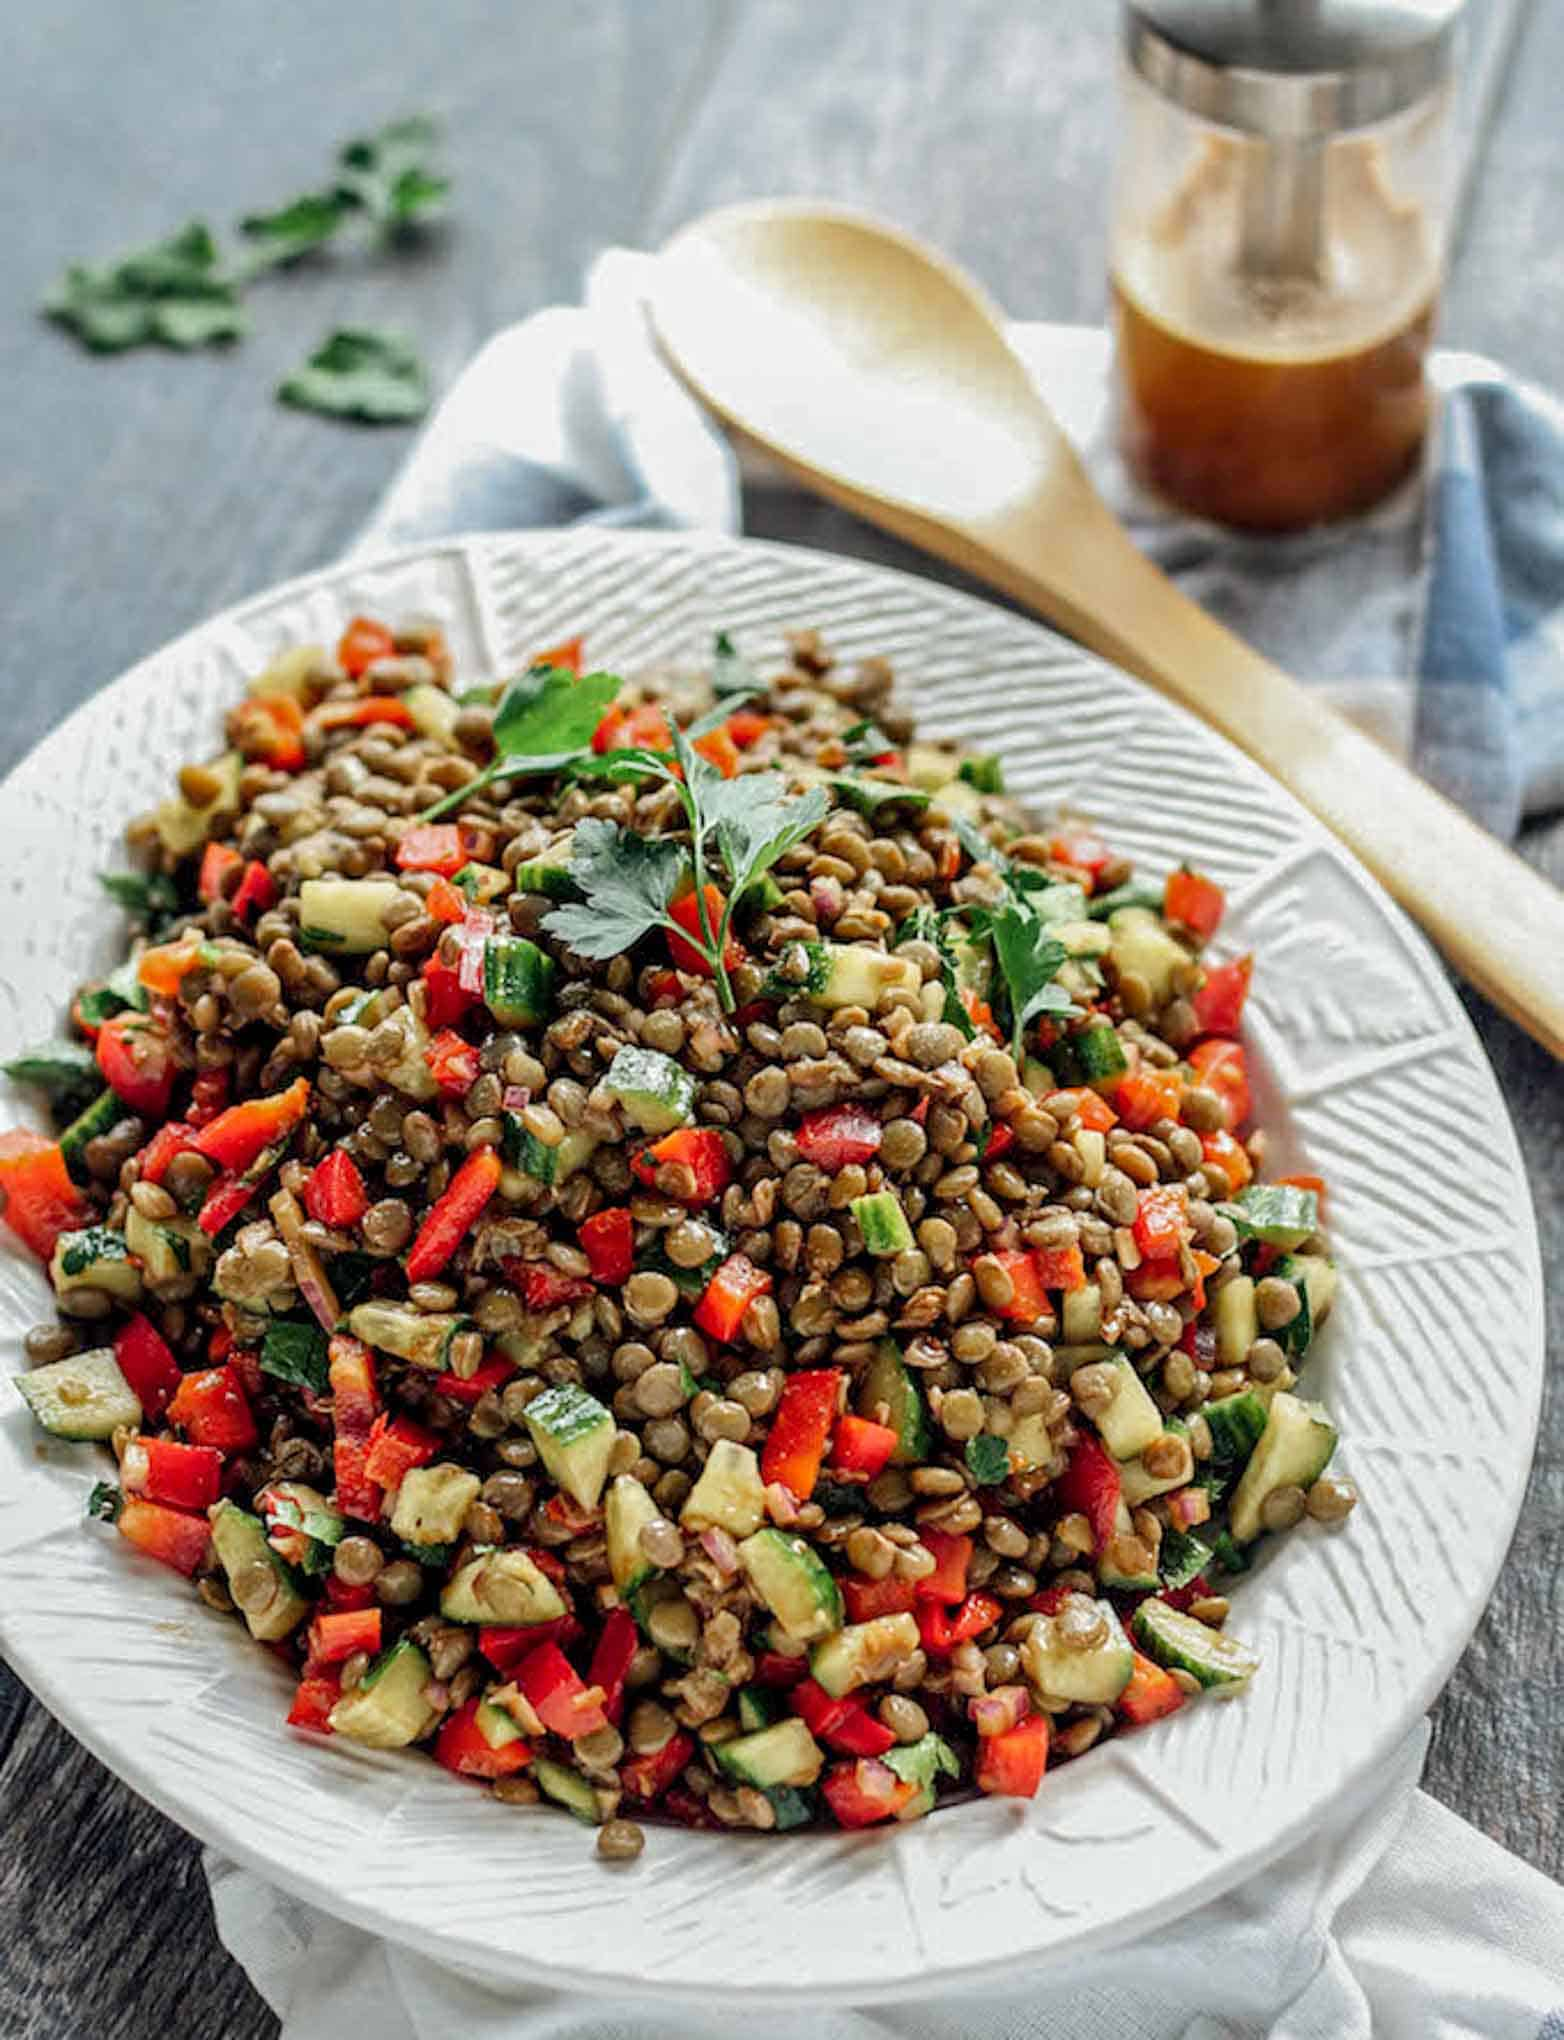 The Balsamic Lentil Salad shown on a platter with a serving utensil and a jar of dressing on the side